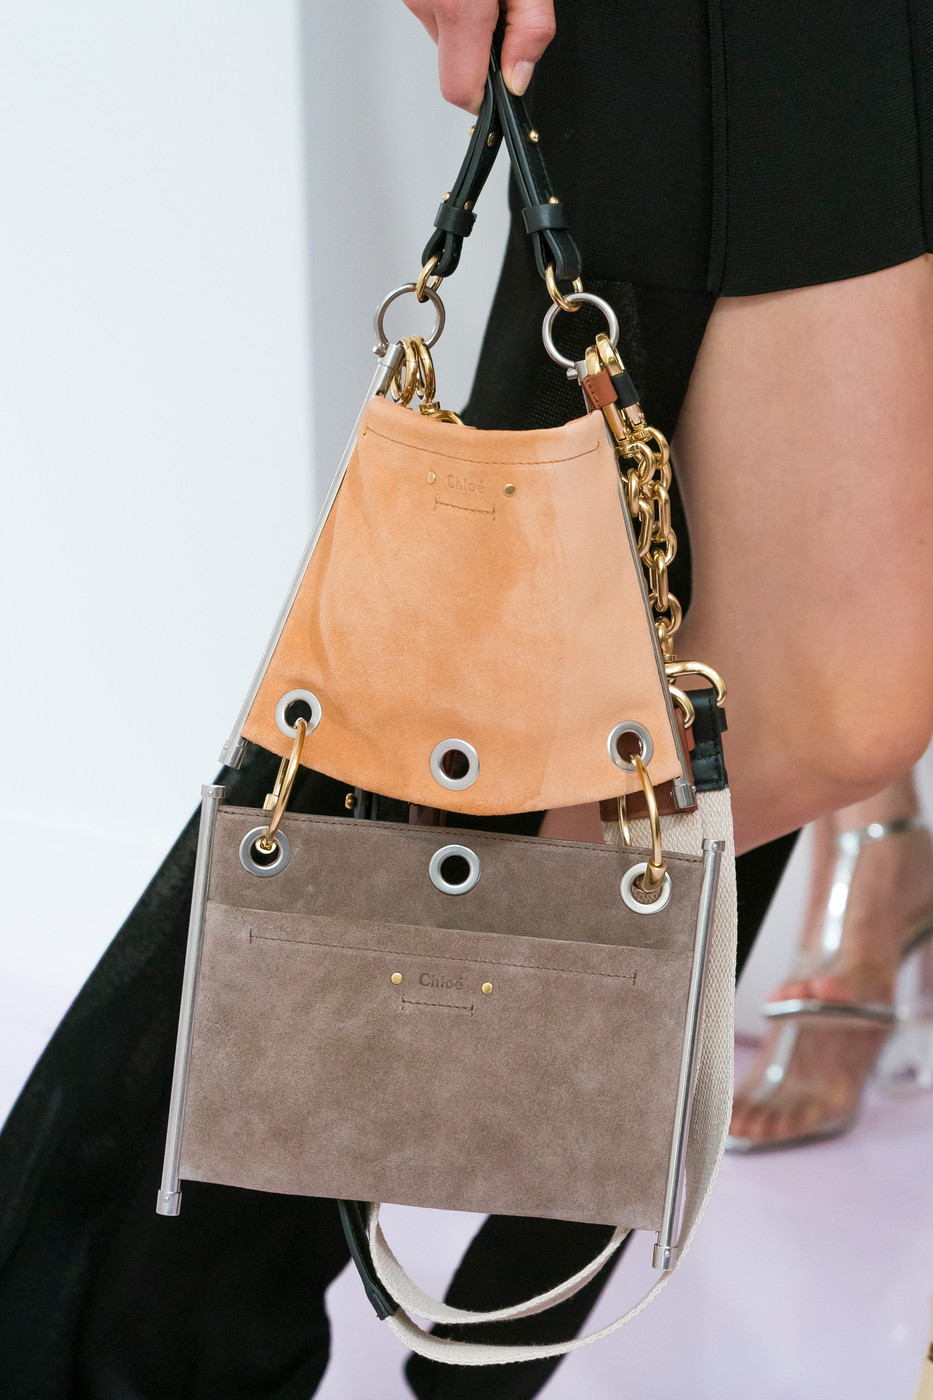 24a23a9a74b0 Buy Chloe Bag In Paris | Stanford Center for Opportunity Policy in ...